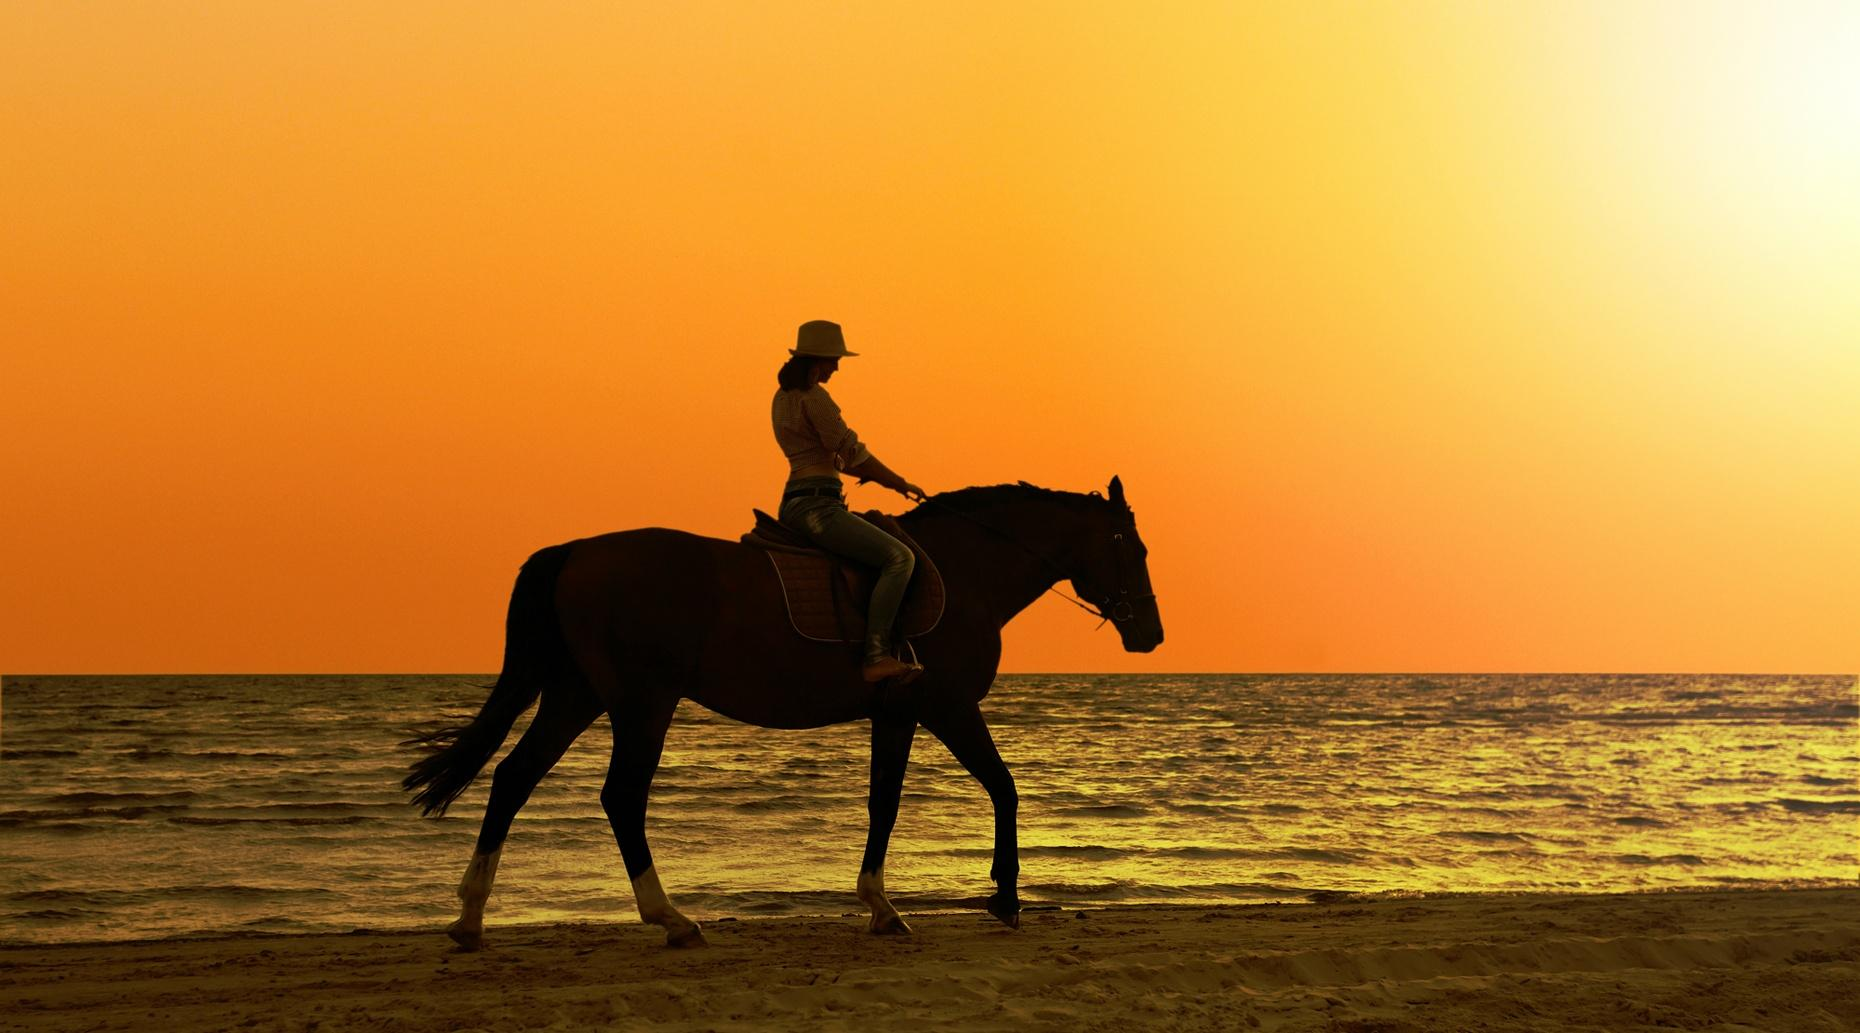 Sunset Beach Horse-Riding Adventure in San Diego